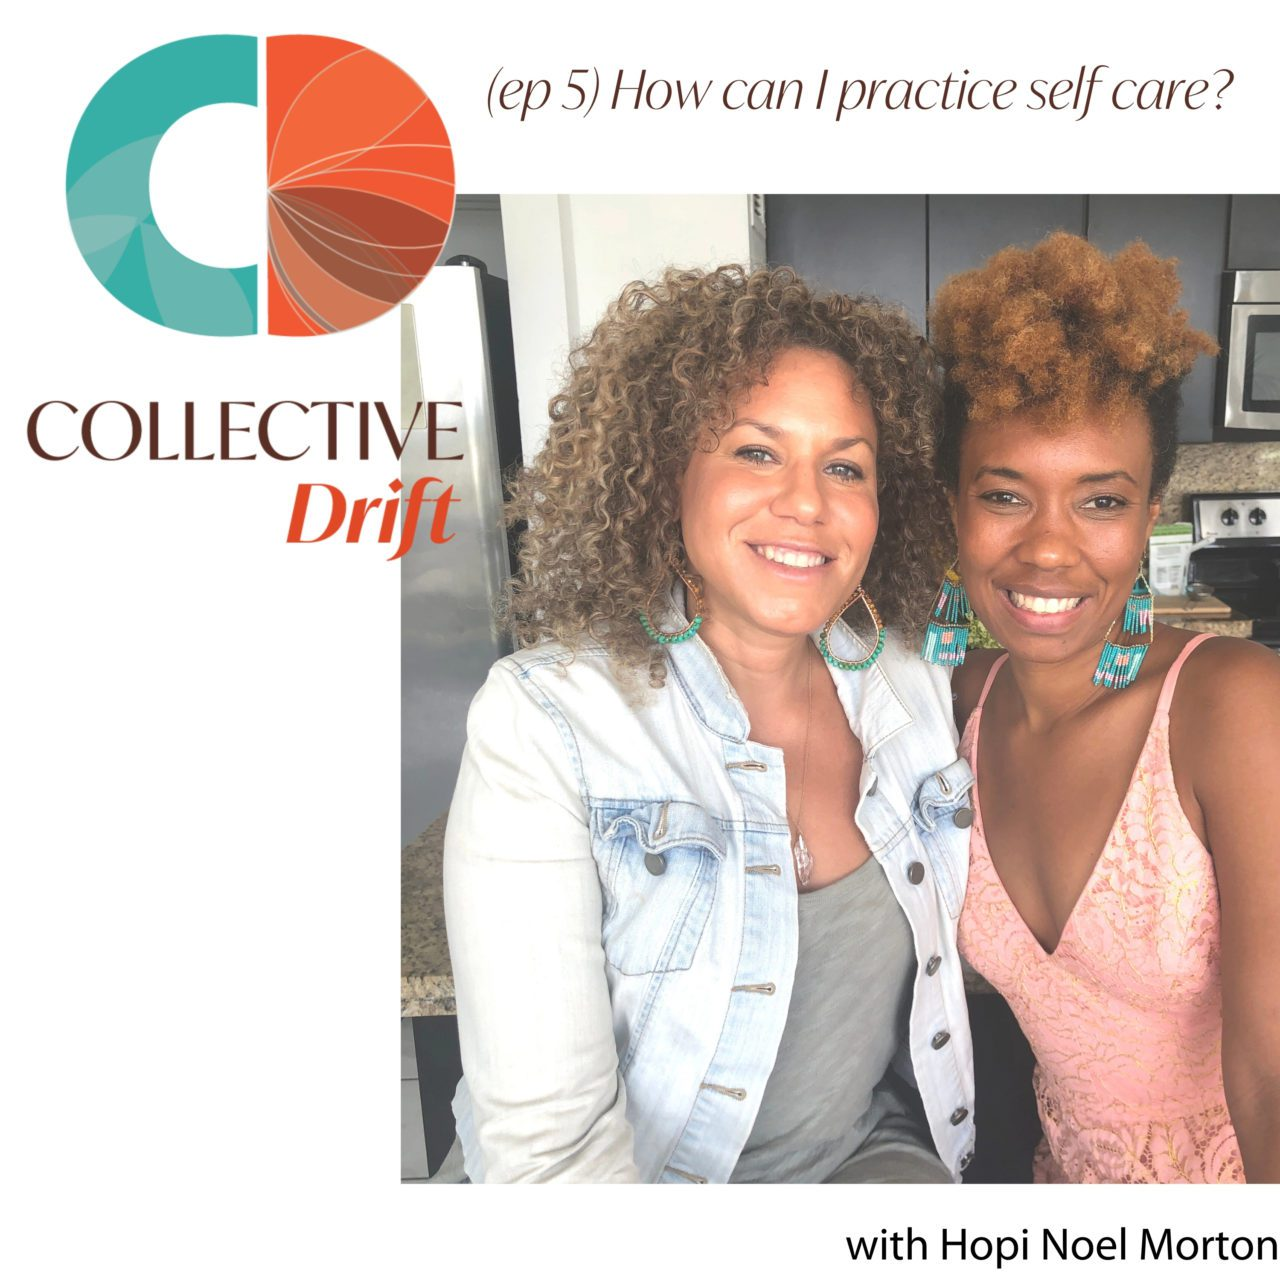 (ep 5) How can I practice self care? An interview with Hopi Noel Morton